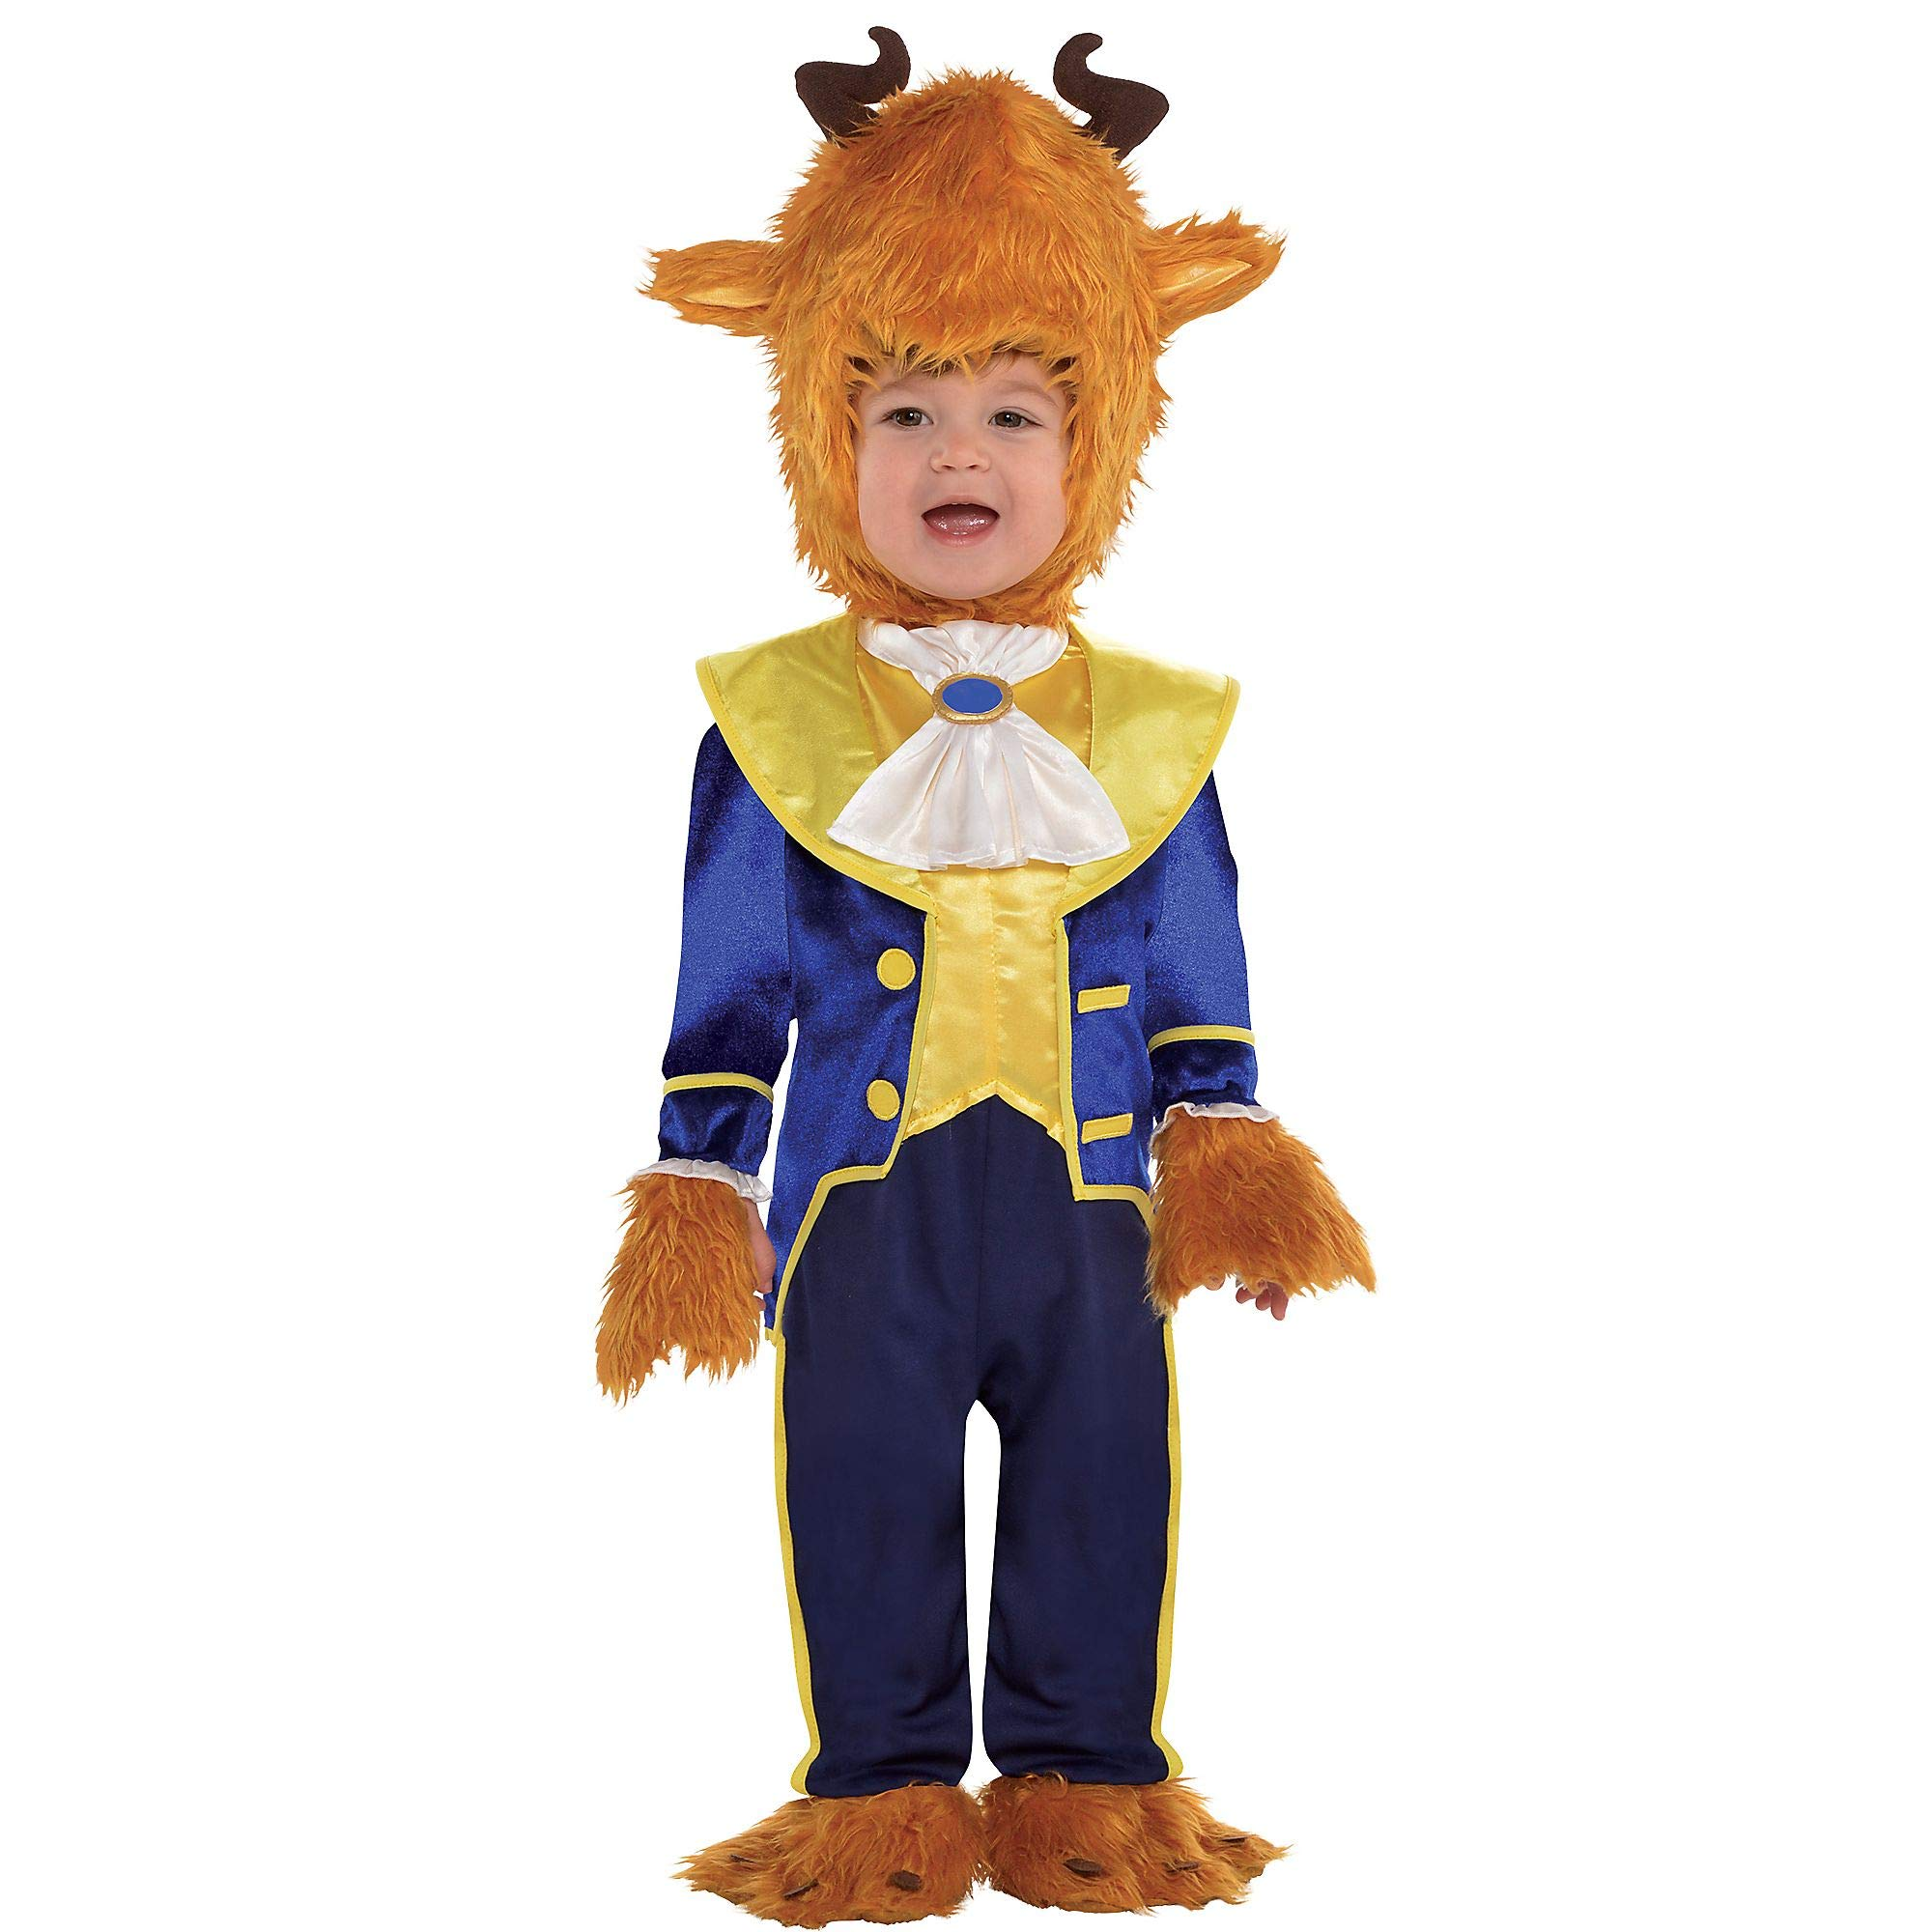 Suit Yourself Beauty and the Beast Beast Costume for Babies, Size 6-12 Months, Includes a Jumpsuit, Booties, and More